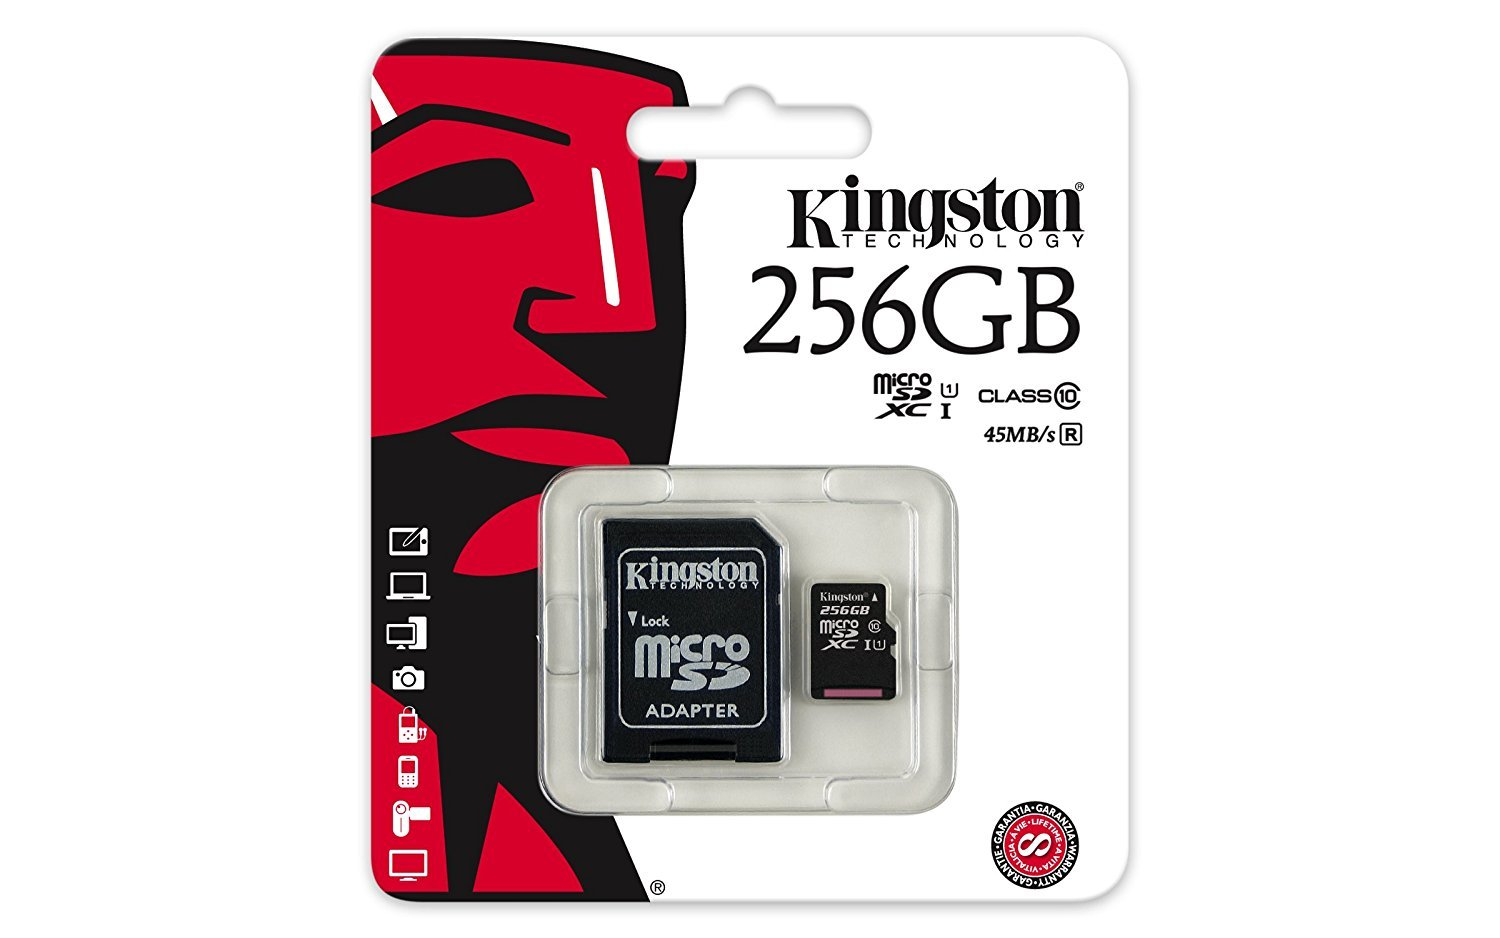 Professional Kingston 256GB TP260 MicroSDXC Card with custom formatting and Standard SD Adapter! (Class 10, UHS-I) by Custom Kingston for LG (Image #4)